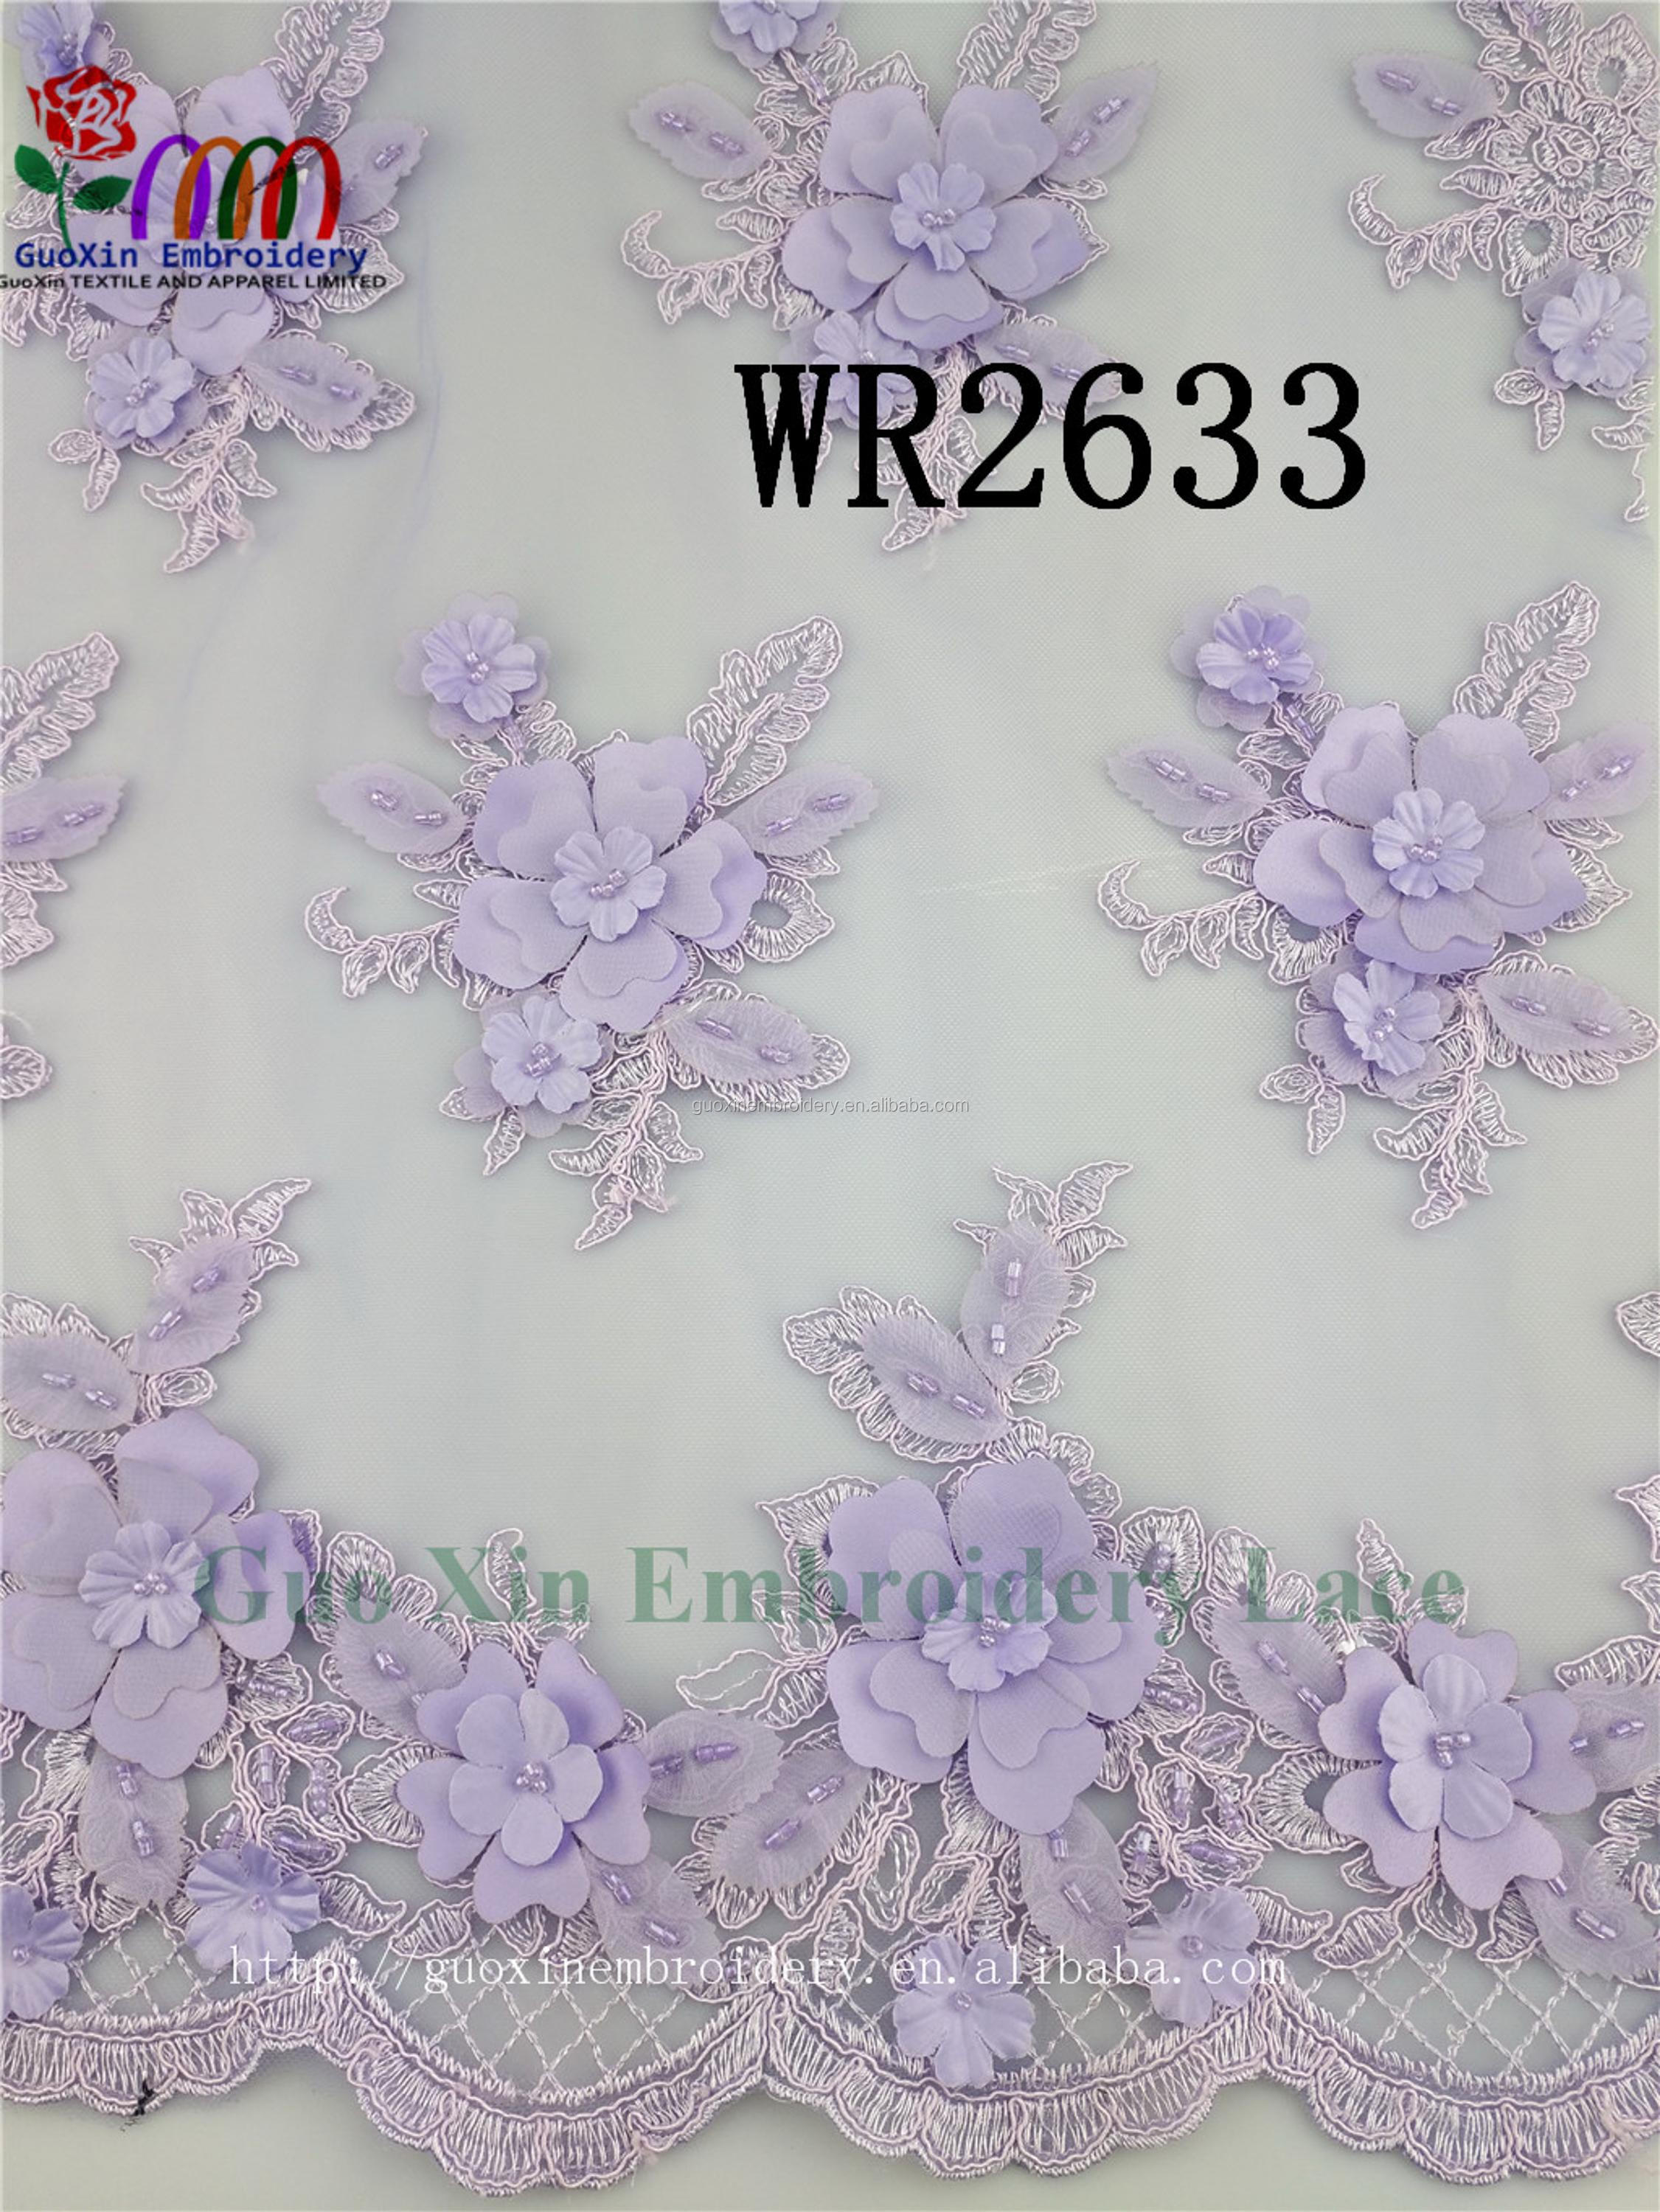 3d tulle beaded lace fabric manufacturer/3d embrordery lace fabric/3d lace exporter